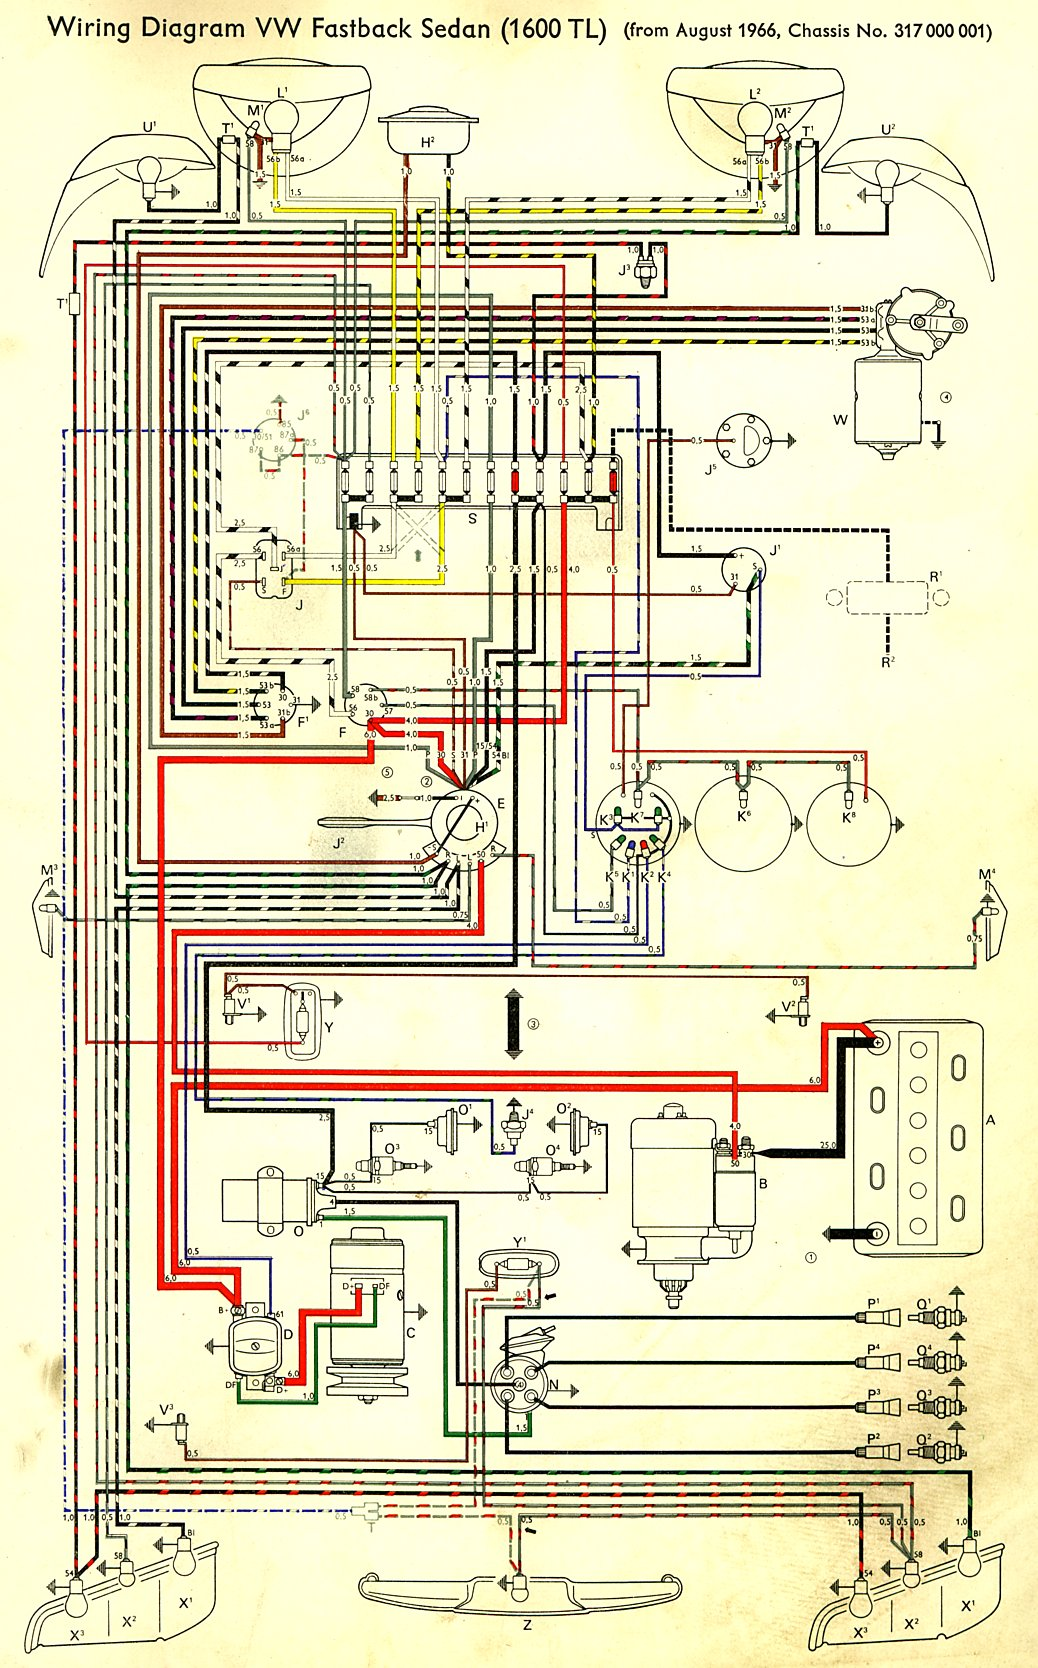 Type 3 Wiring Diagram Essig Basic Electrical Diagrams Click On The To See Thesamba Com 1971 Vw Super Beetle